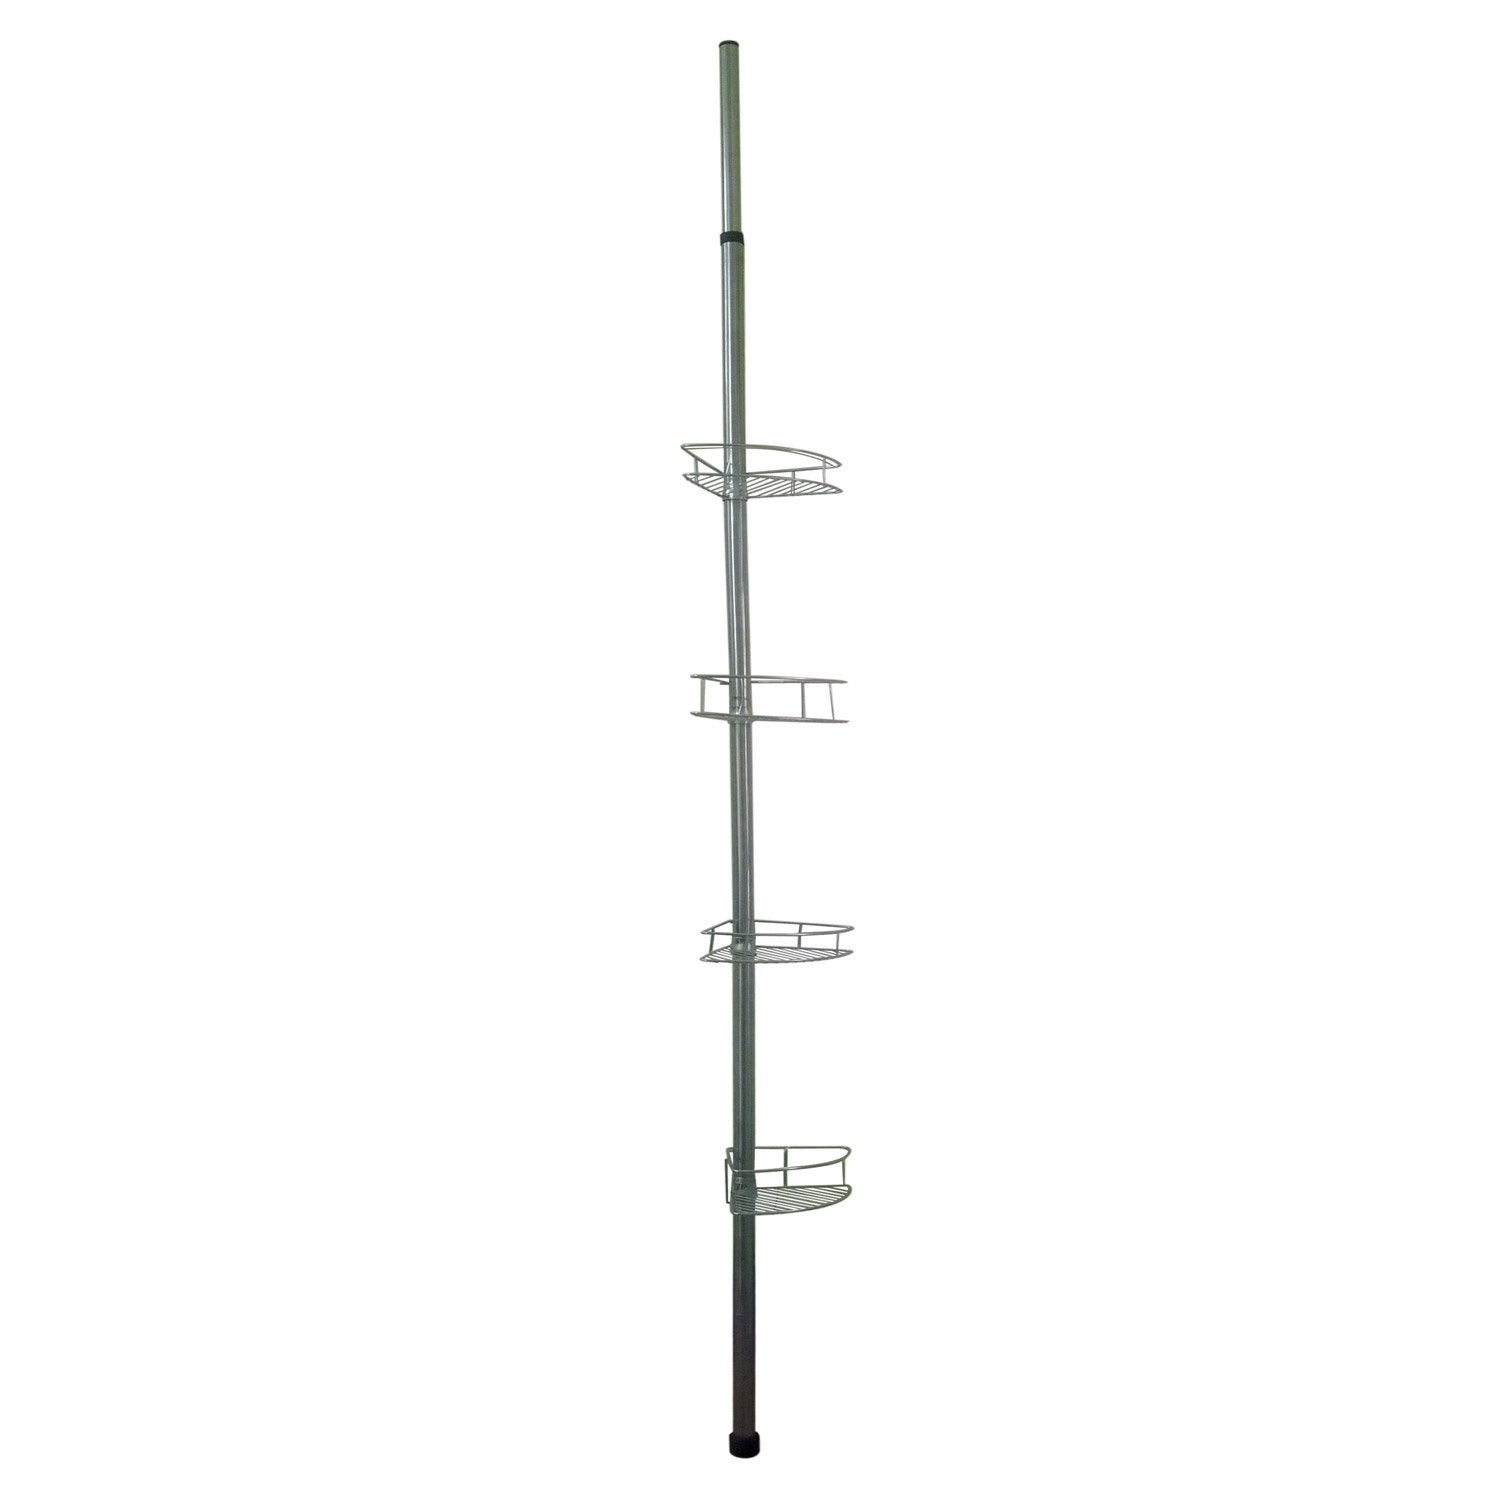 Etag re de bain douche poser chrom smart leroy merlin - Etagere sur mesure leroy merlin ...